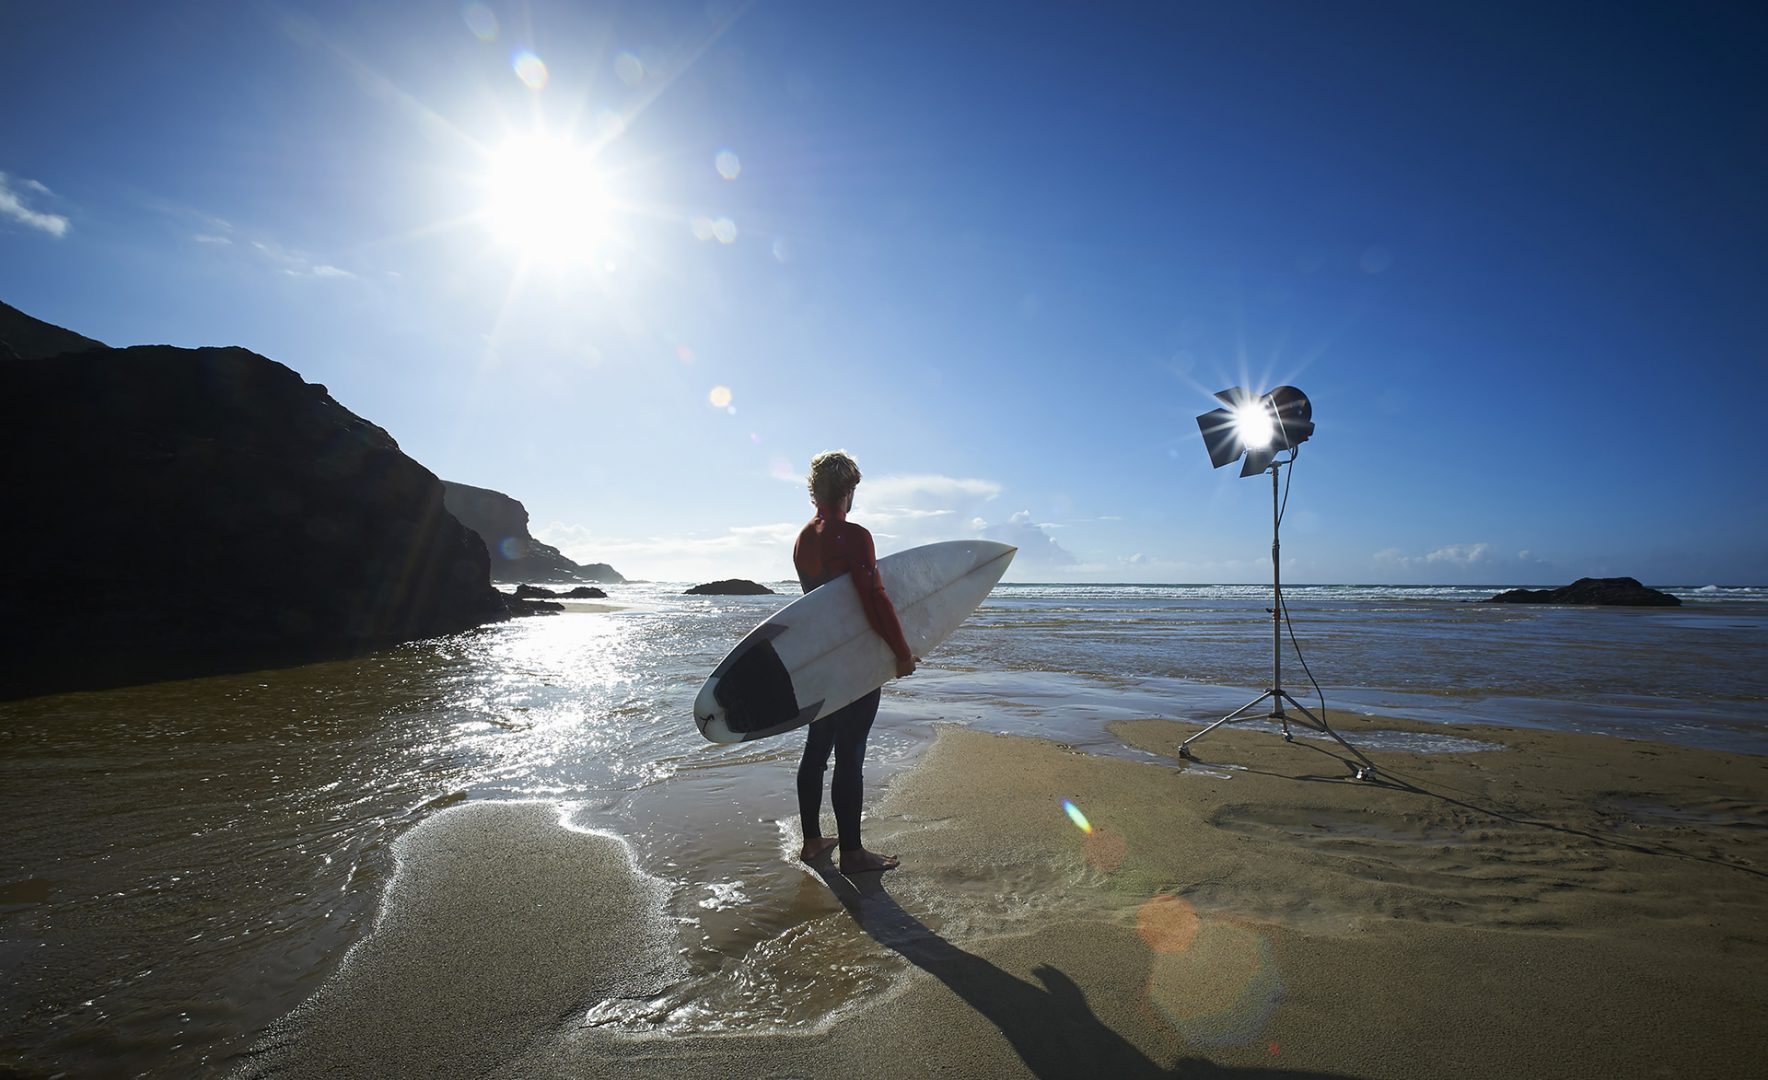 Photograph of a surfer on a Cornish beach